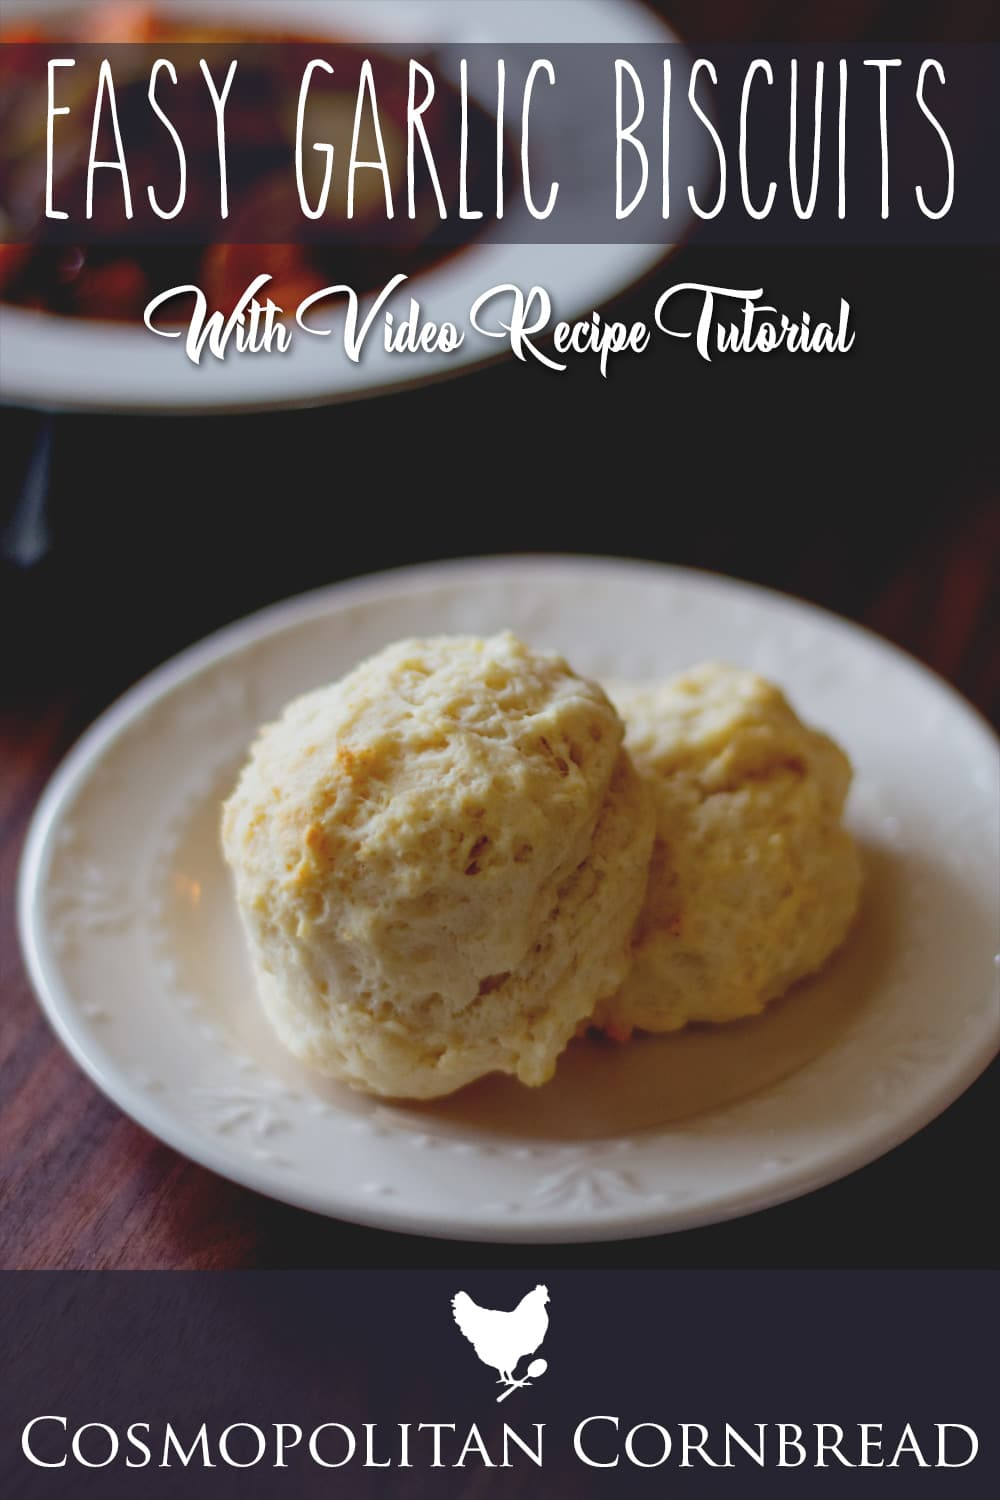 Easy Garlic Biscuits - Simple drop biscuits with tasty garlic flavor, great for with soups or pasta. Recipe from Cosmopolitan Cornbread